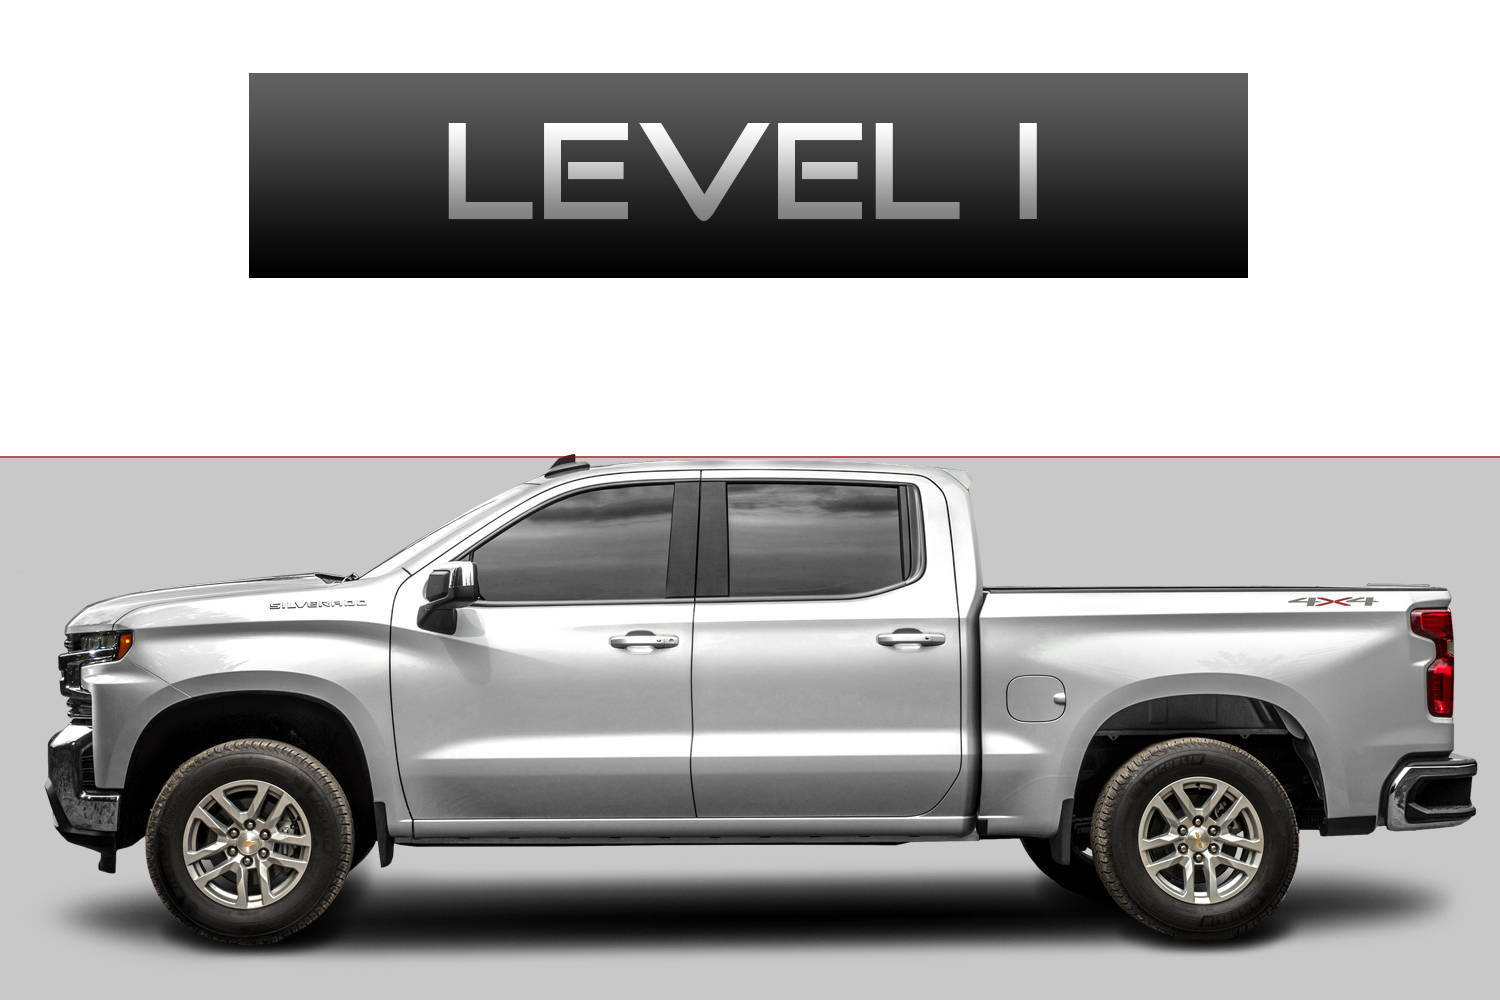 Chevrolet Silverado 1500 Off-Road Customizing Package Level 1 by 3C Trucks